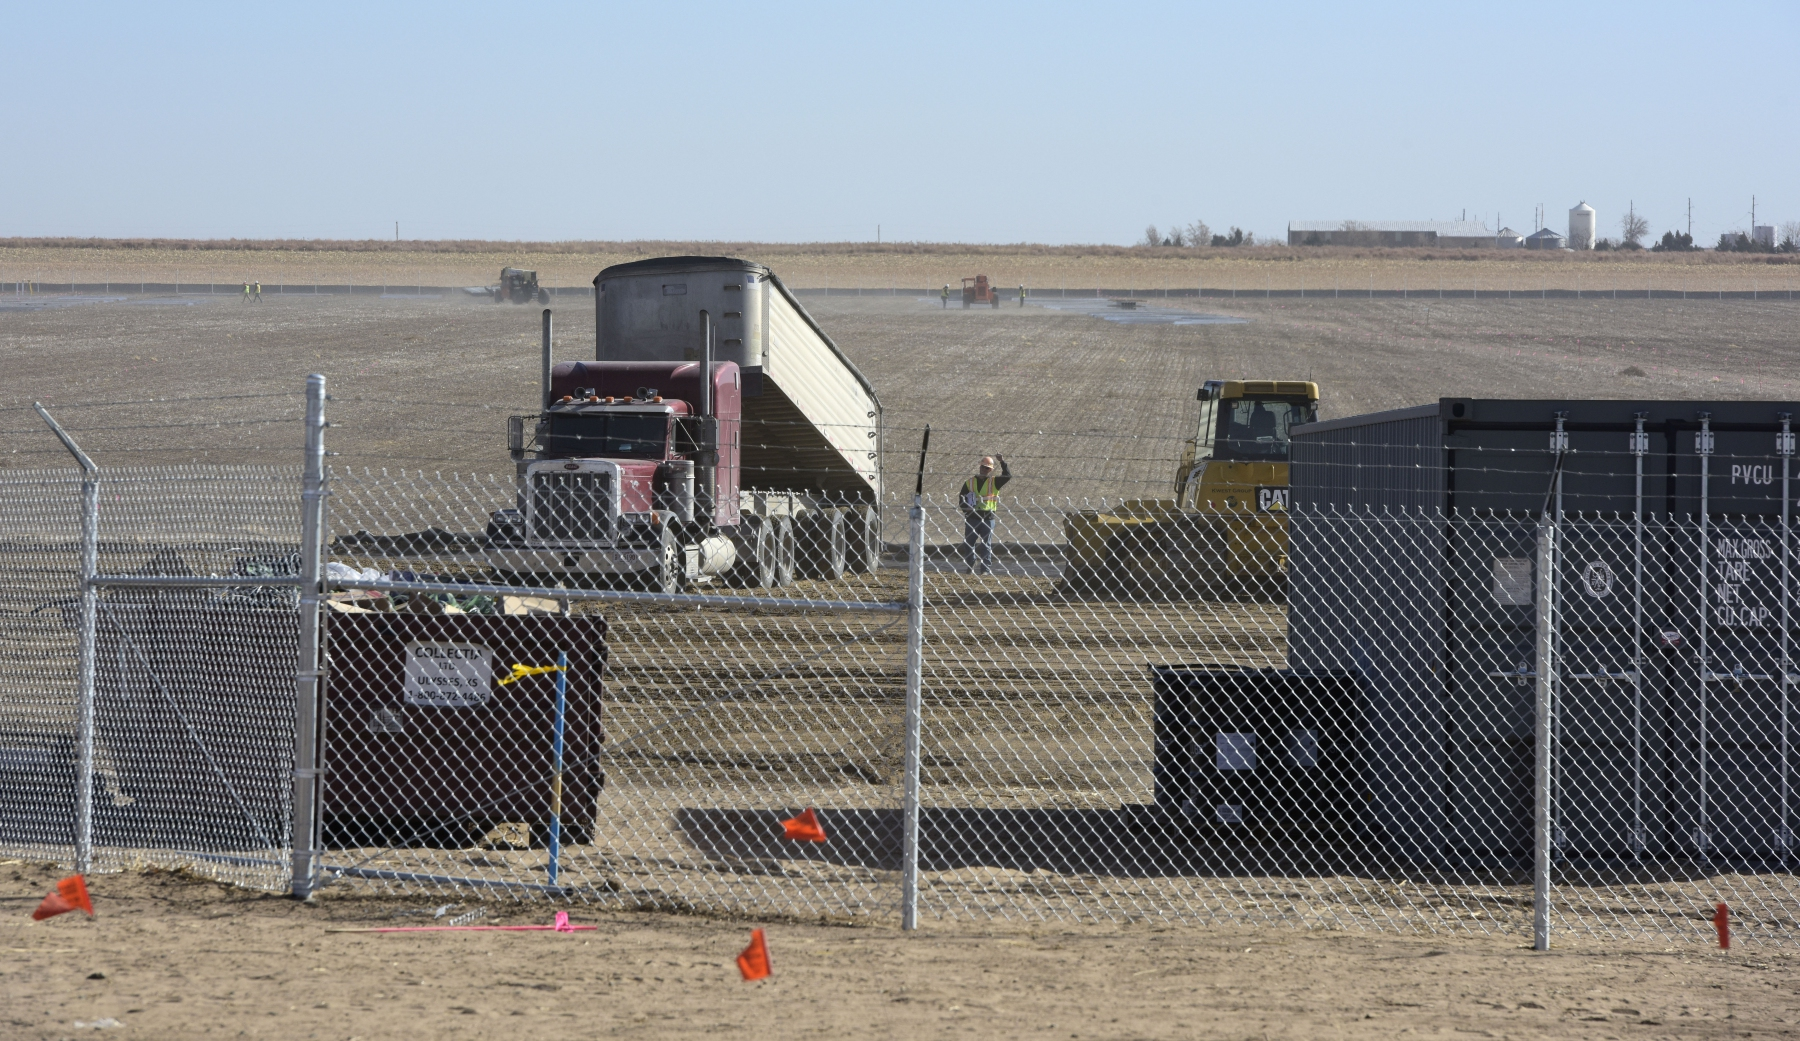 Workers continue preparing the site on 11-19-19 at the Johnson Corner Solar Project.